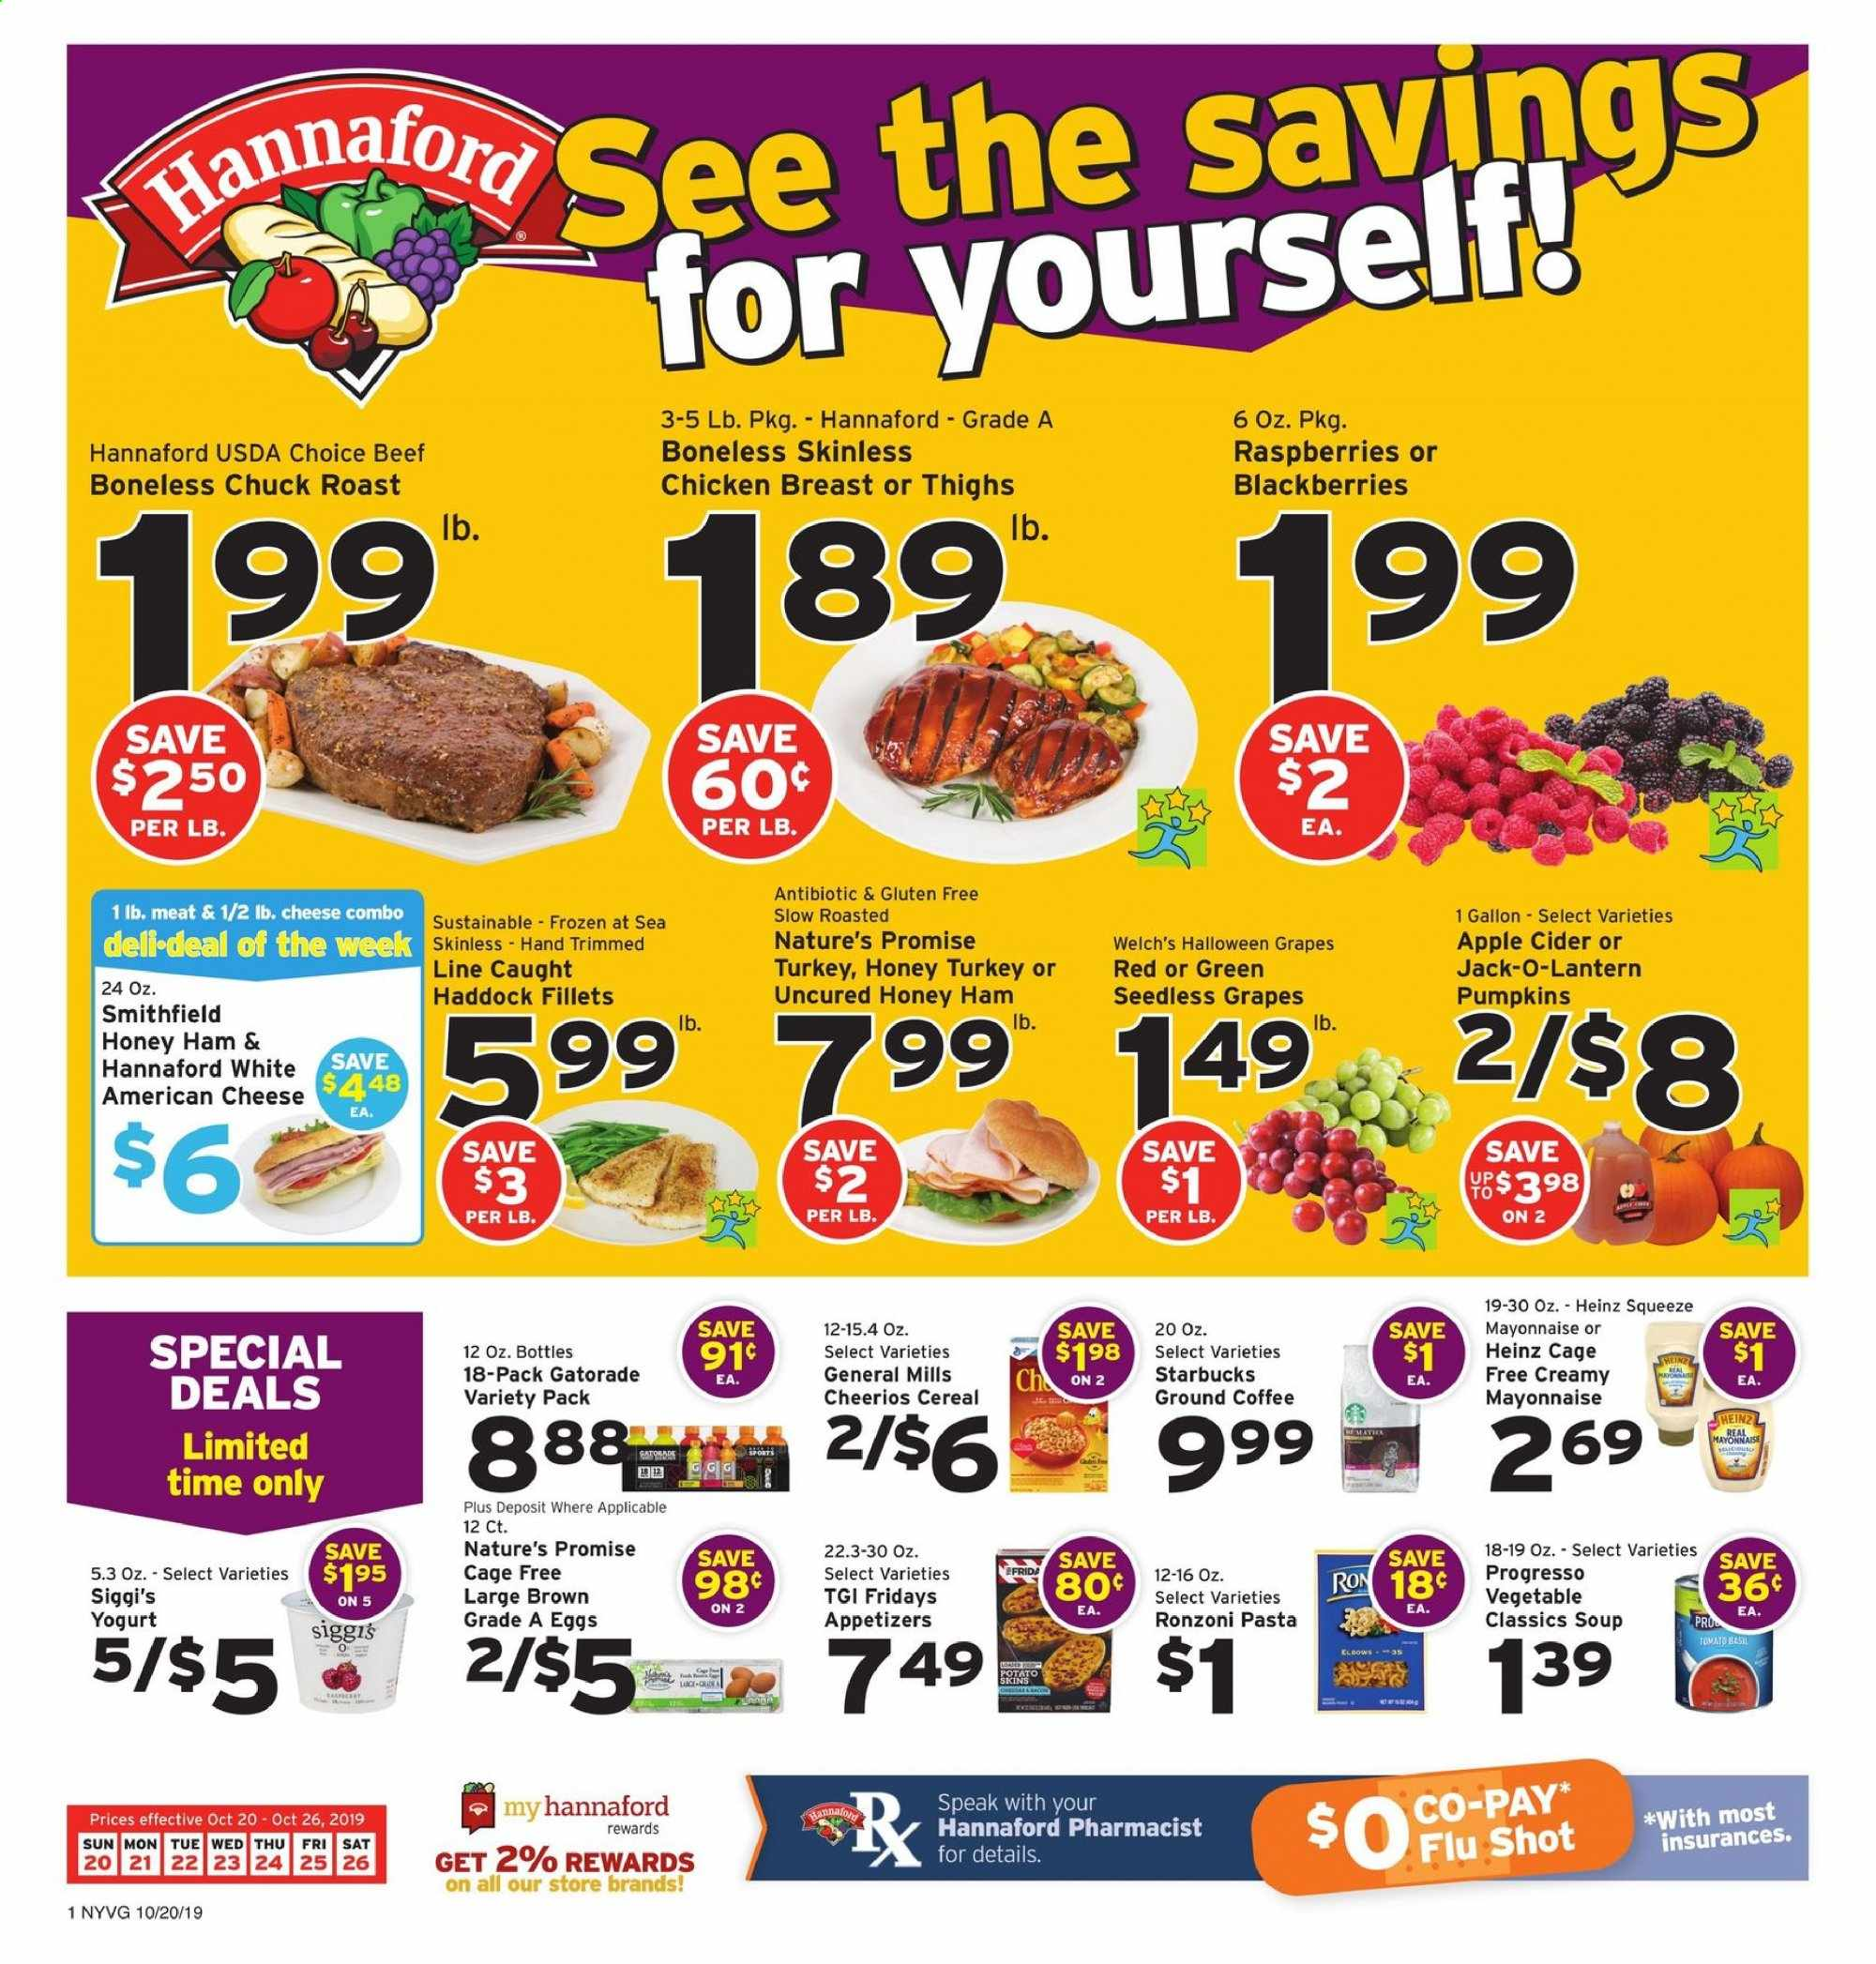 Hannaford Flyer - 10.20.2019 - 10.26.2019 - Sales products - tomatoes, blackberries, grapes, raspberries, seedless grapes, haddock, soup, ham, cheese, eggs, mayonnaise, Heinz, cereals, Cheerios, pasta, honey, coffee, ground coffee, apple cider, ron, turkey, chicken, chicken breast, beef meat, Frozen, lantern, Starbucks. Page 1.